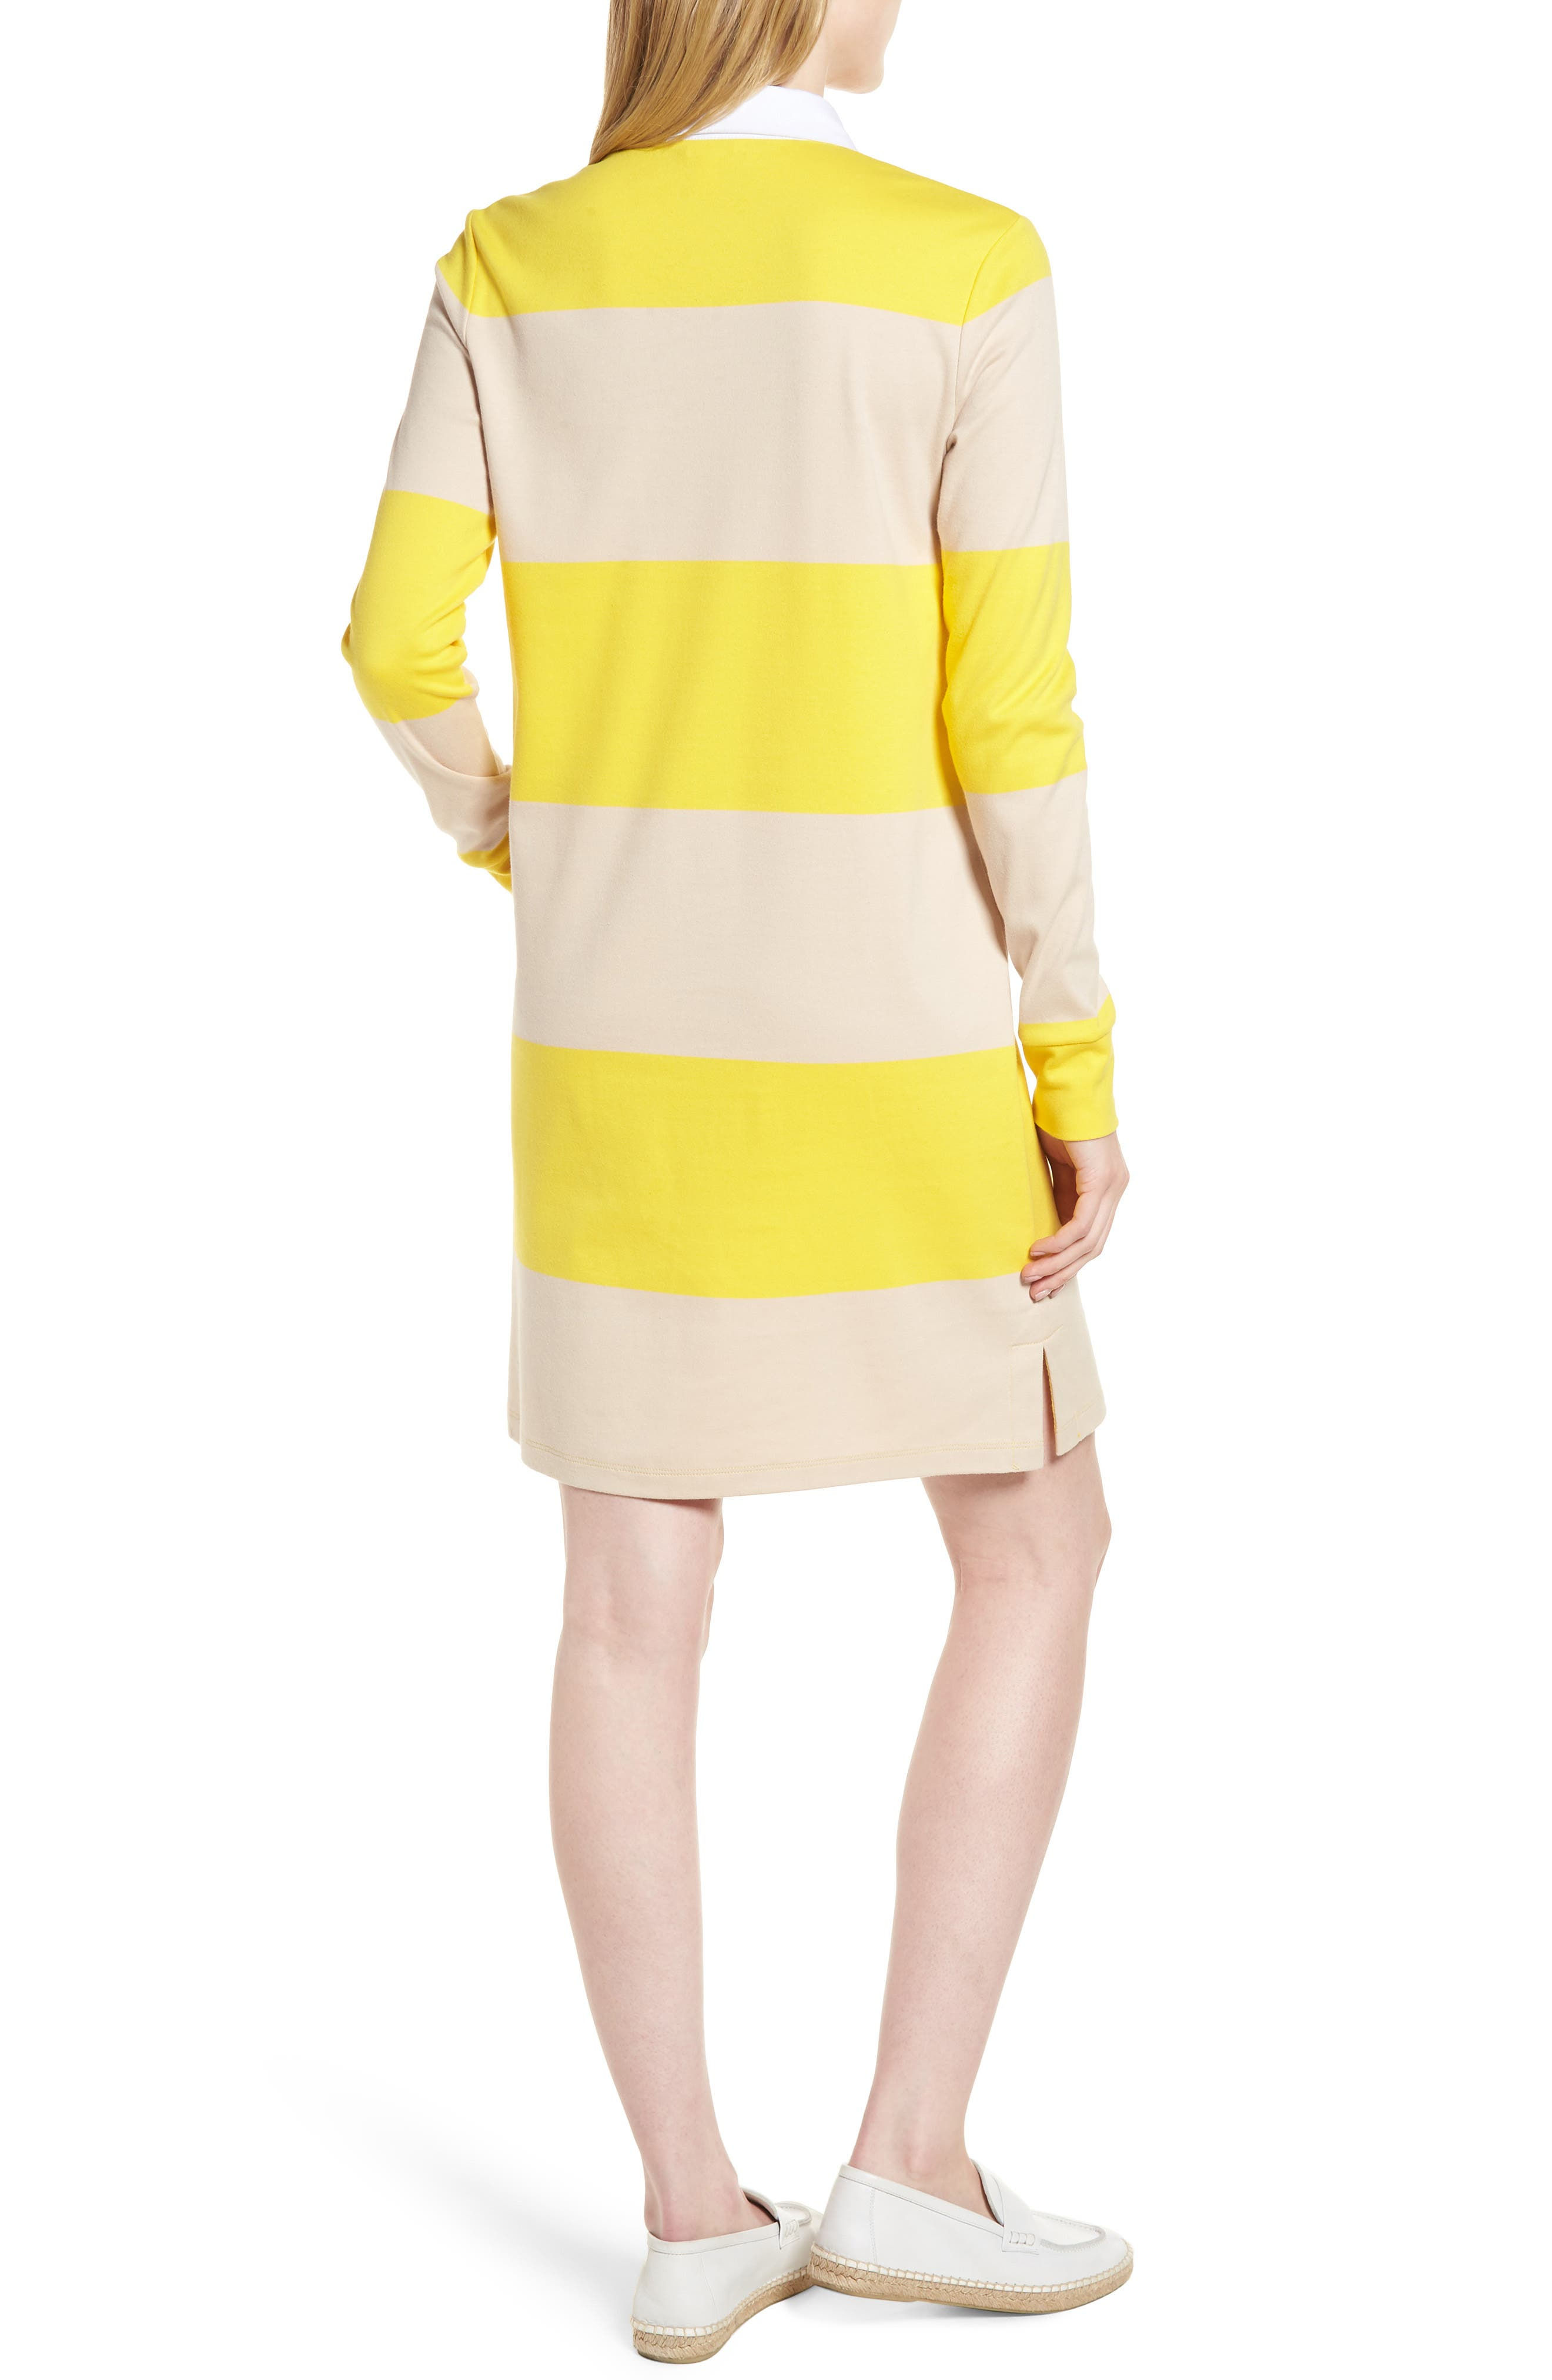 Cotton Rugby Dress,                             Alternate thumbnail 2, color,                             Yellow- Beige Stripe